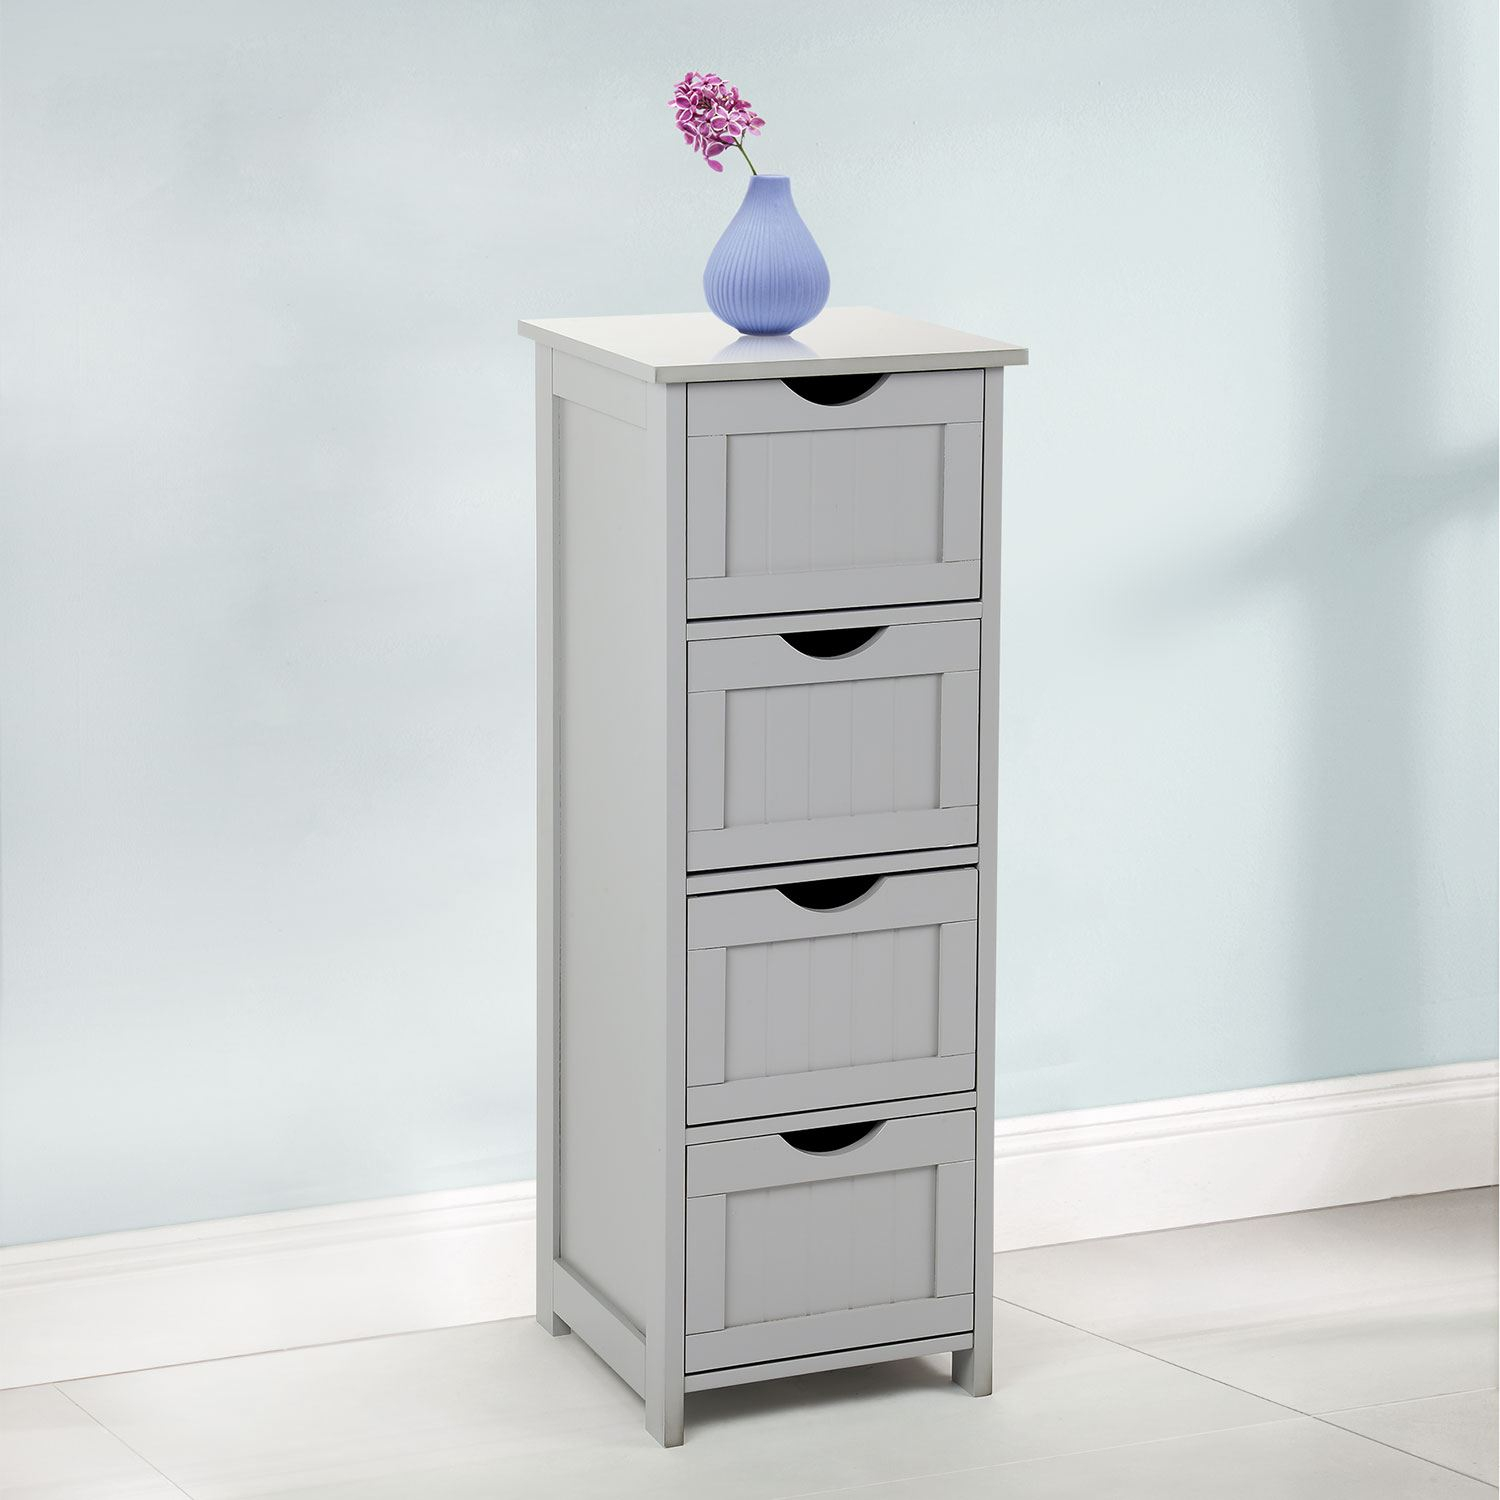 Details About 4 Drawer Slim Chest Tall Bathroom Storage Cabinet Bedroom Hallway Grey pertaining to proportions 1500 X 1500